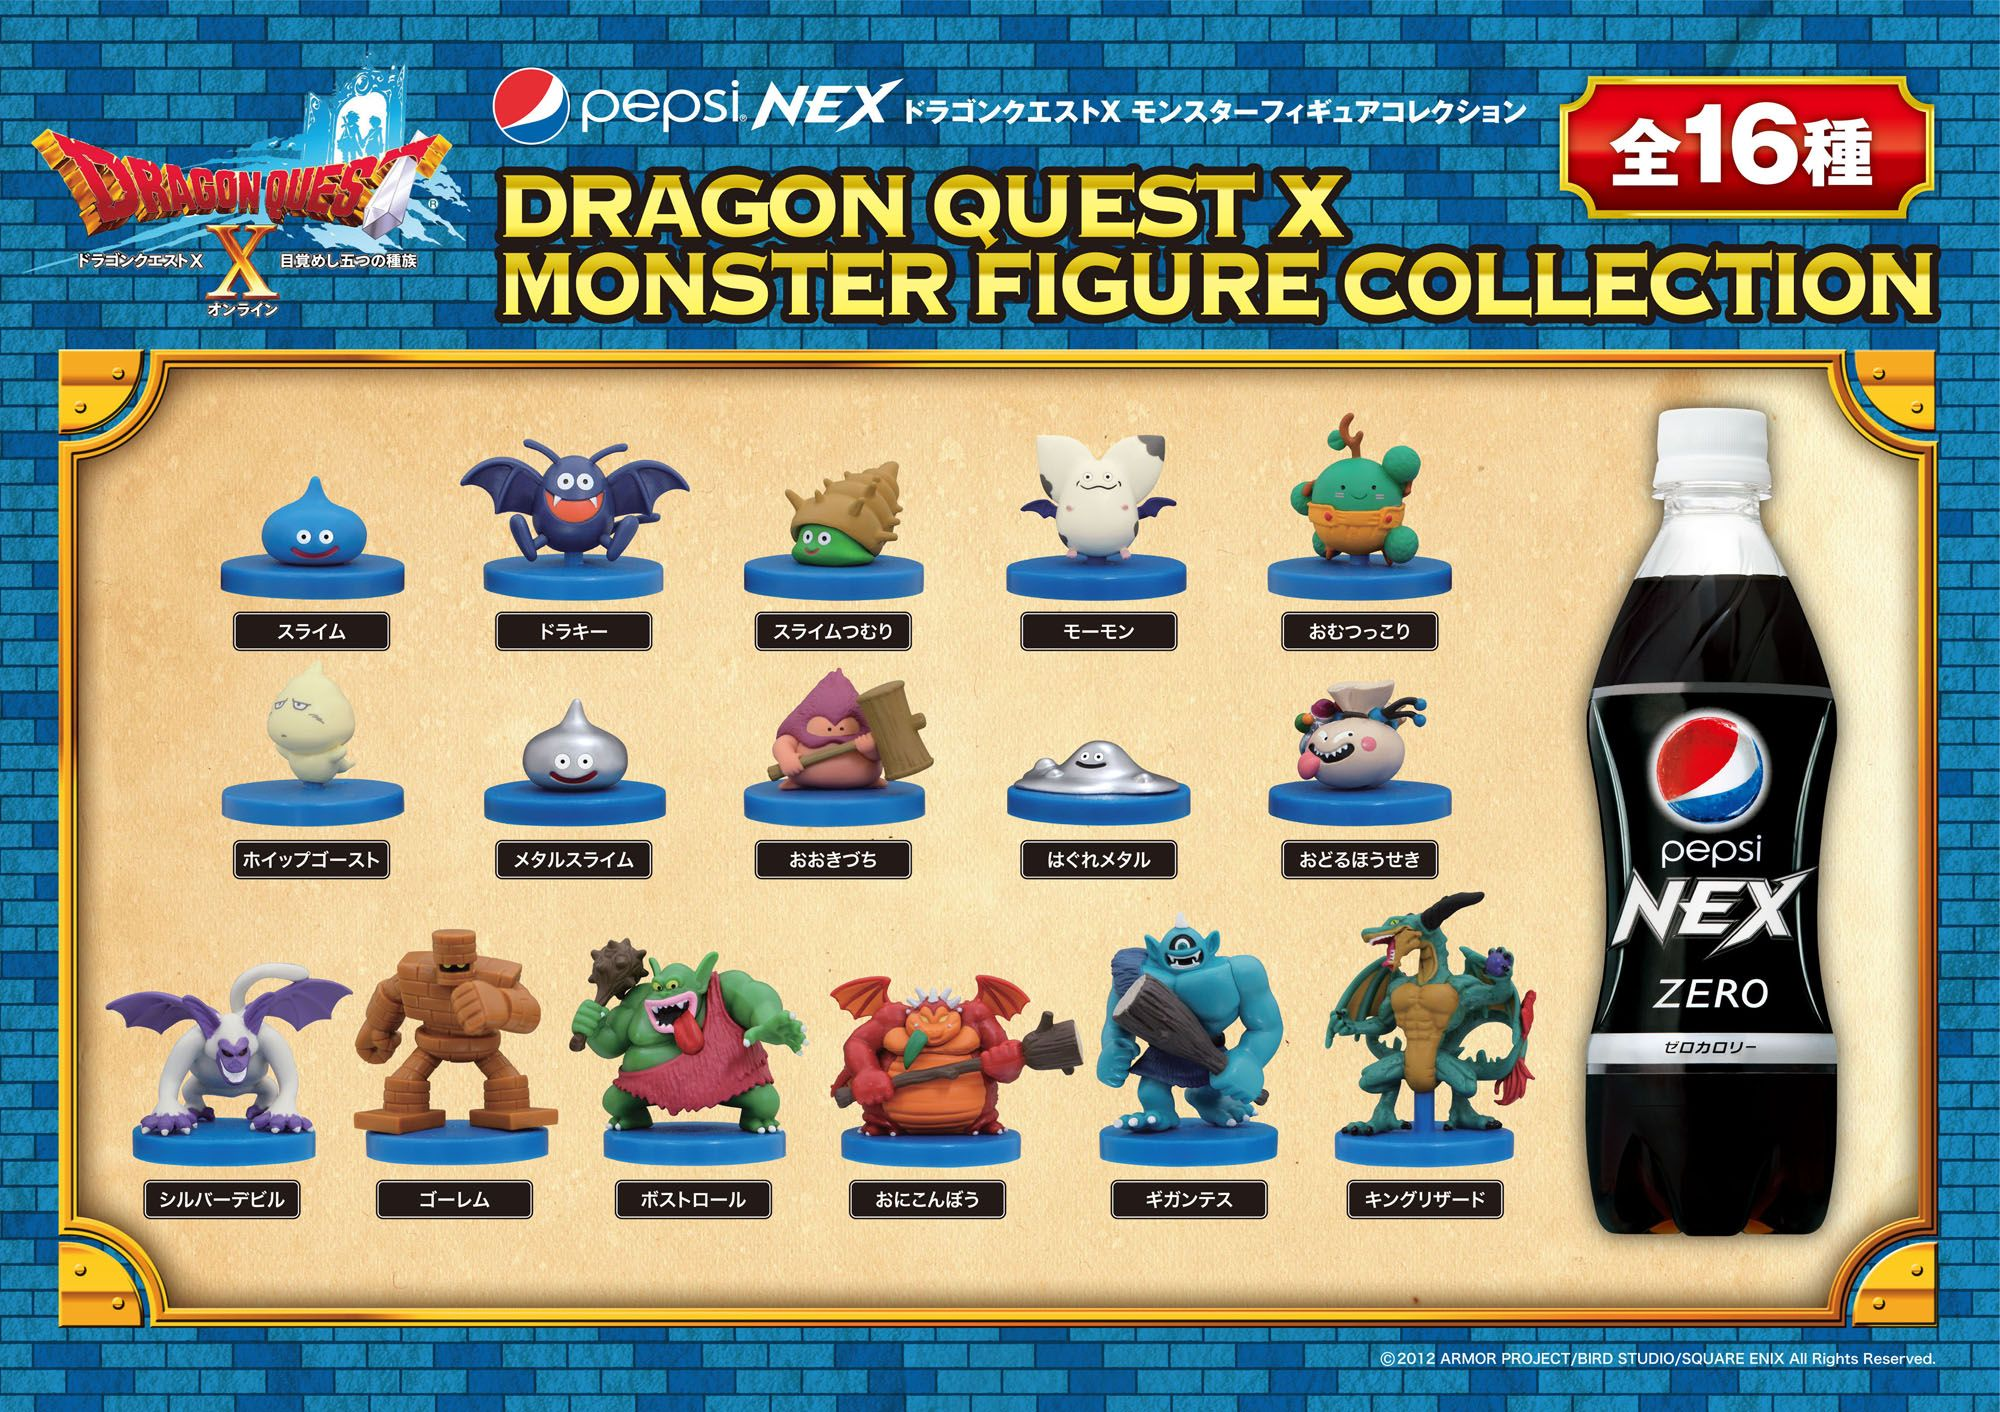 dragon quest x monster figure collection promoted by pepsi nex